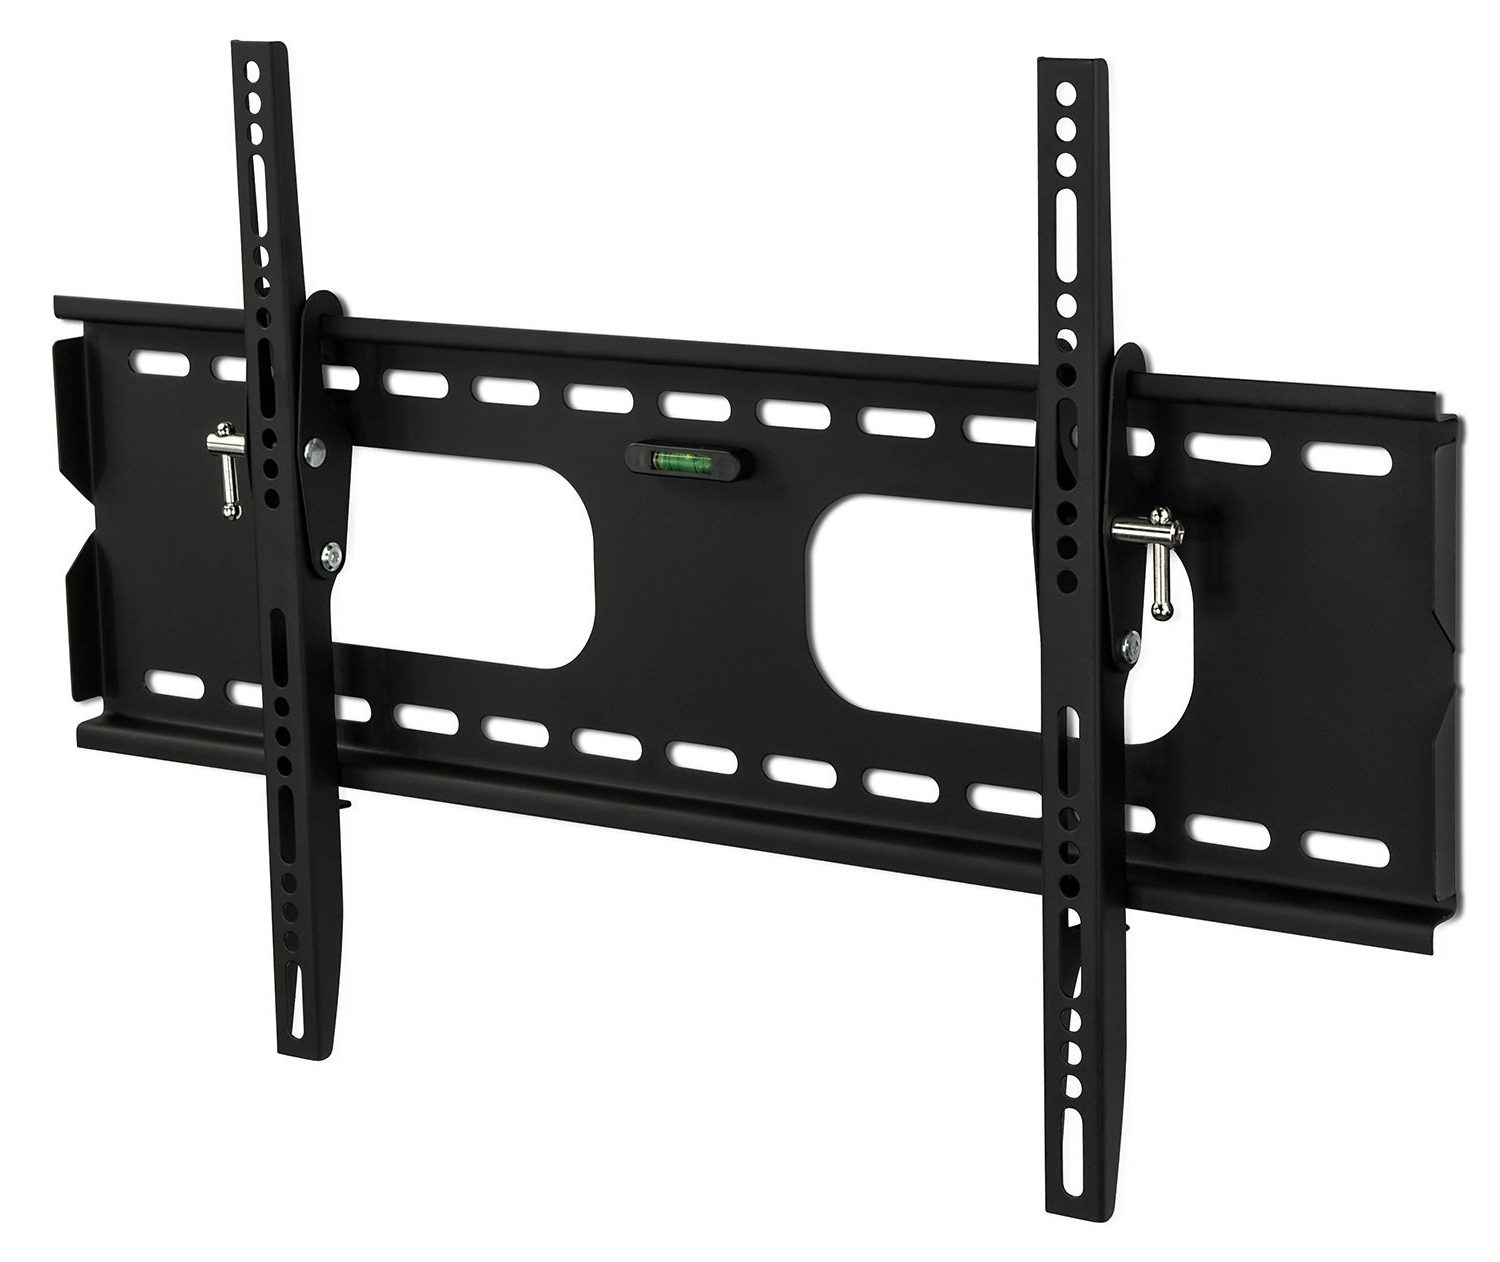 Favorite Mount It! Mi 318b Universal Tilting Tv Wall Mount Bracket For 32, 37 Inside Tilted Wall Mount For Tv (View 16 of 20)